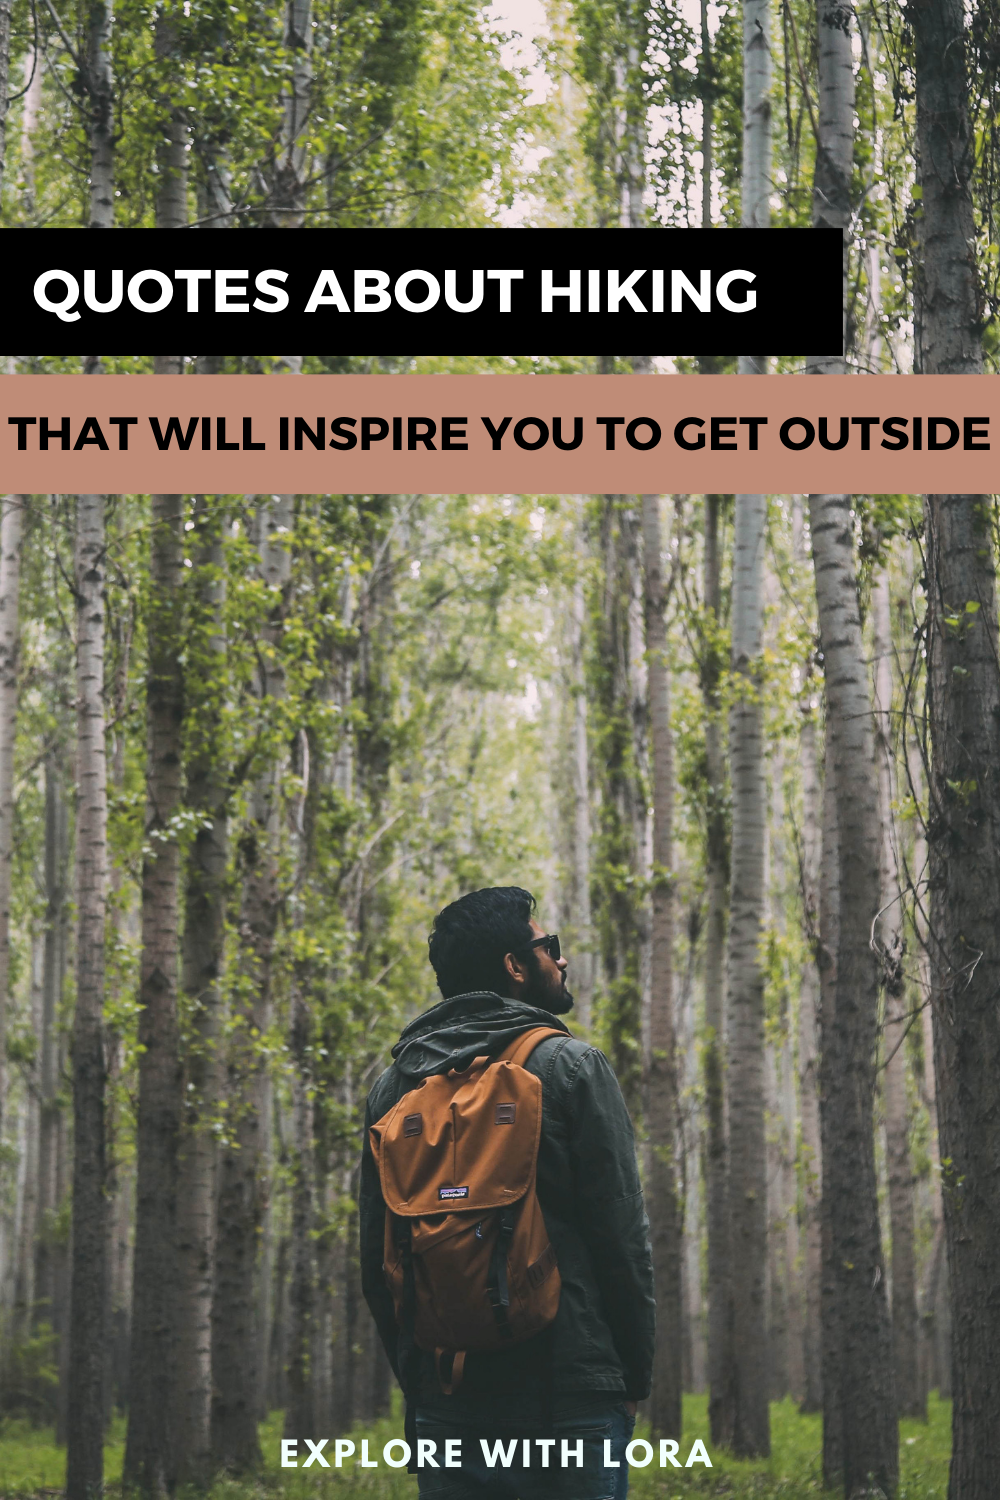 80 Quotes About Hiking That Will Inspire You To Get Outdoors Hiking Quotes Hiking Quotes Adventure Hiking Quotes Funny